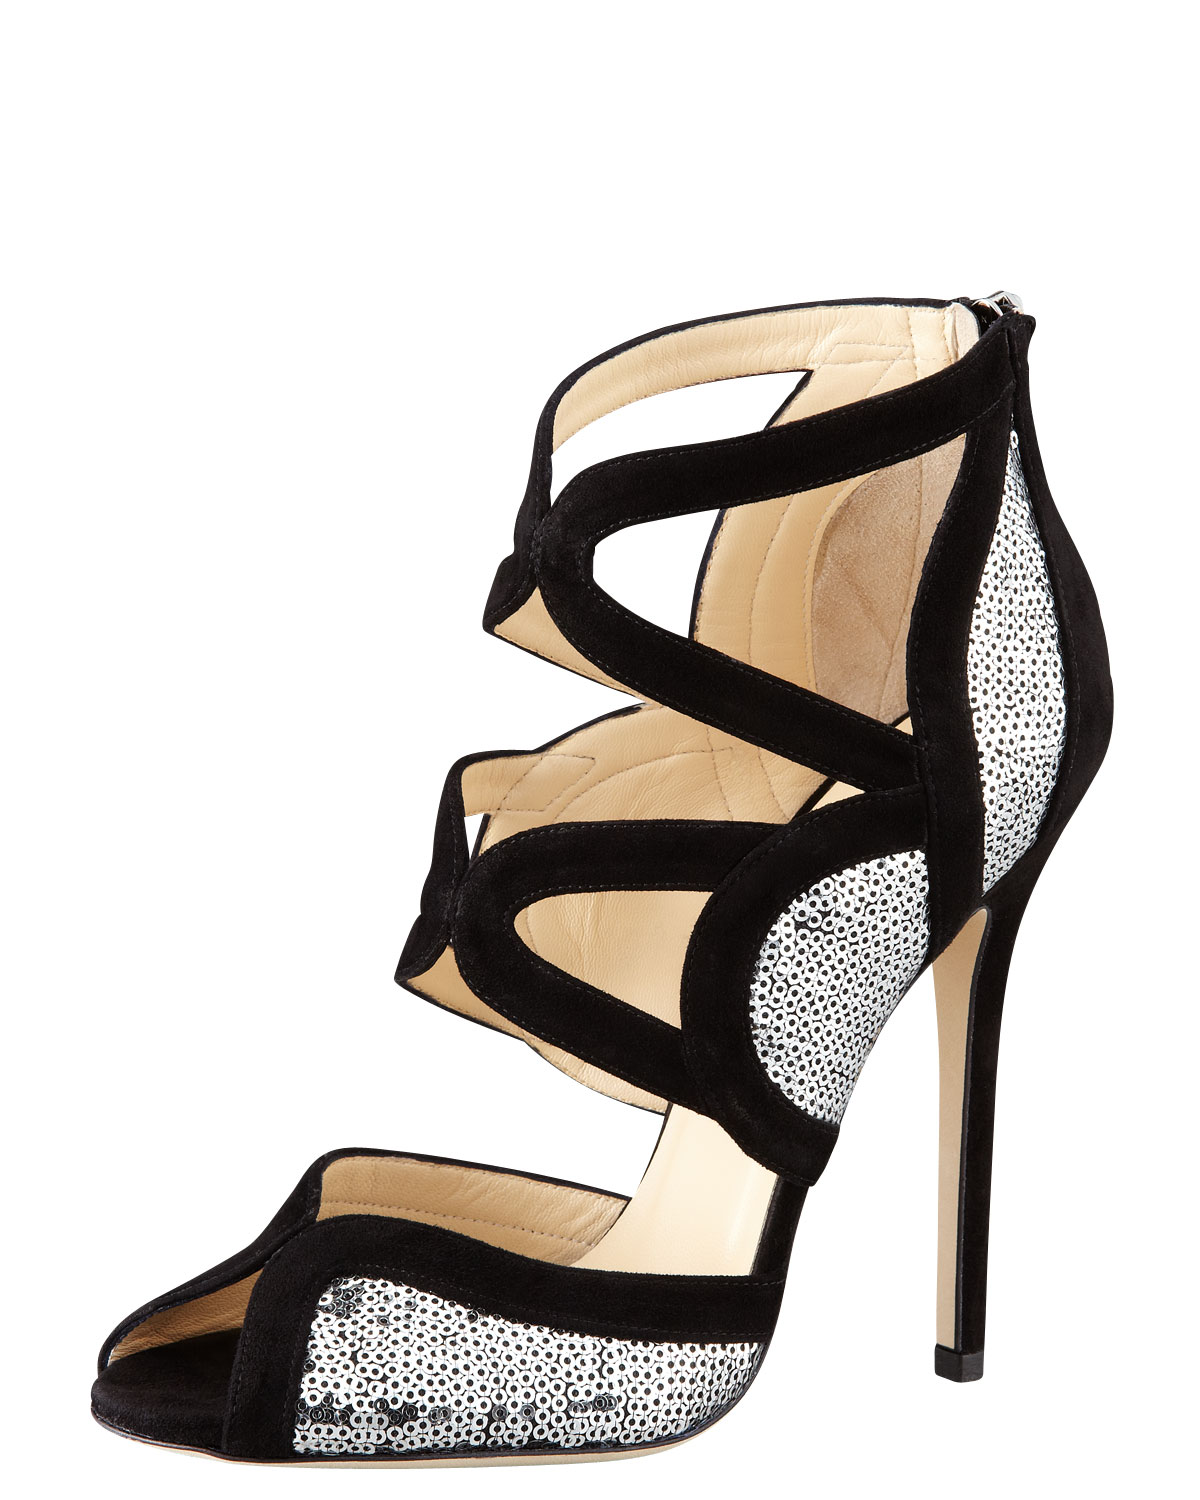 Jimmy Choo Sequined Pearl-Embellished Sandals explore clearance 2014 explore cheap price footlocker finishline for sale r5zetSxb